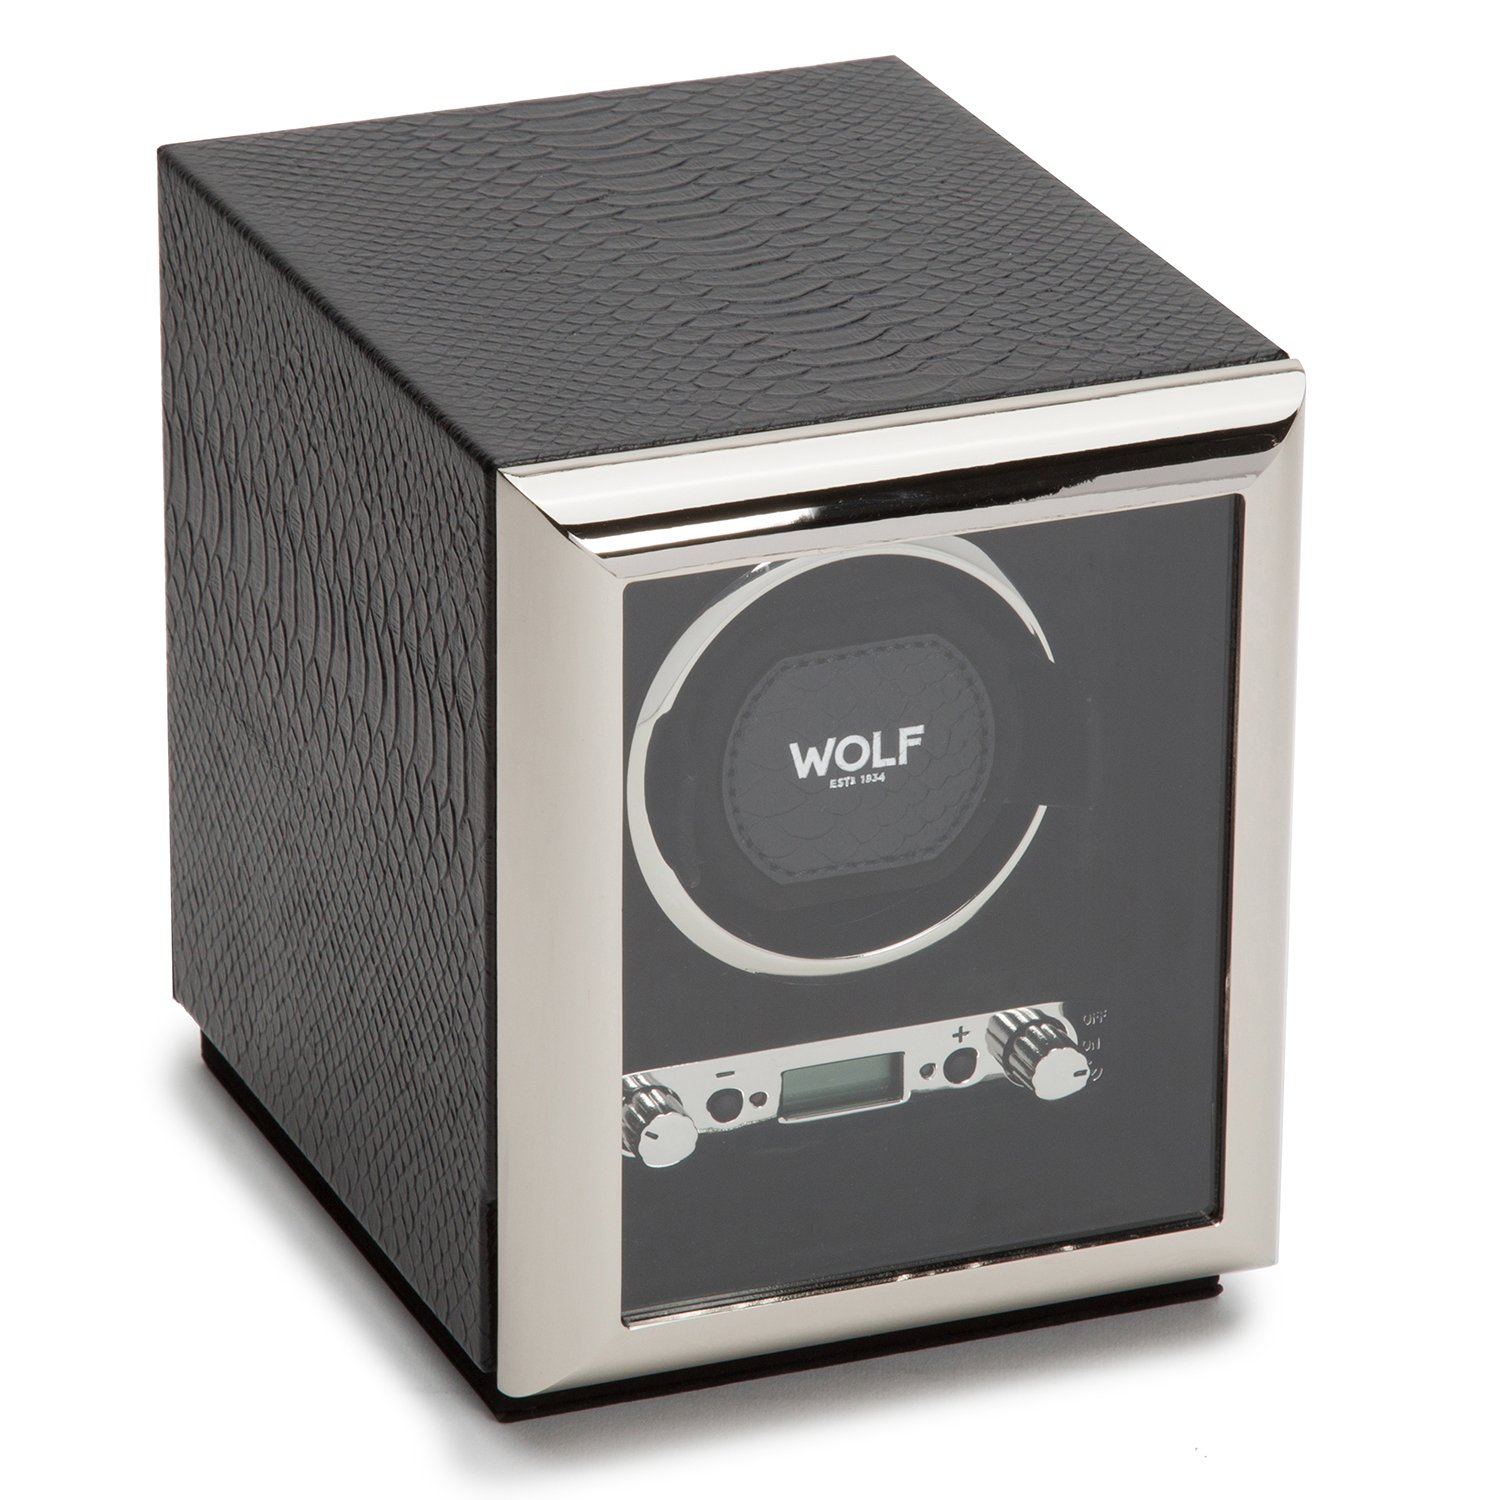 WOLF 461720 Exotic Single Watch Winder with Cover, Black